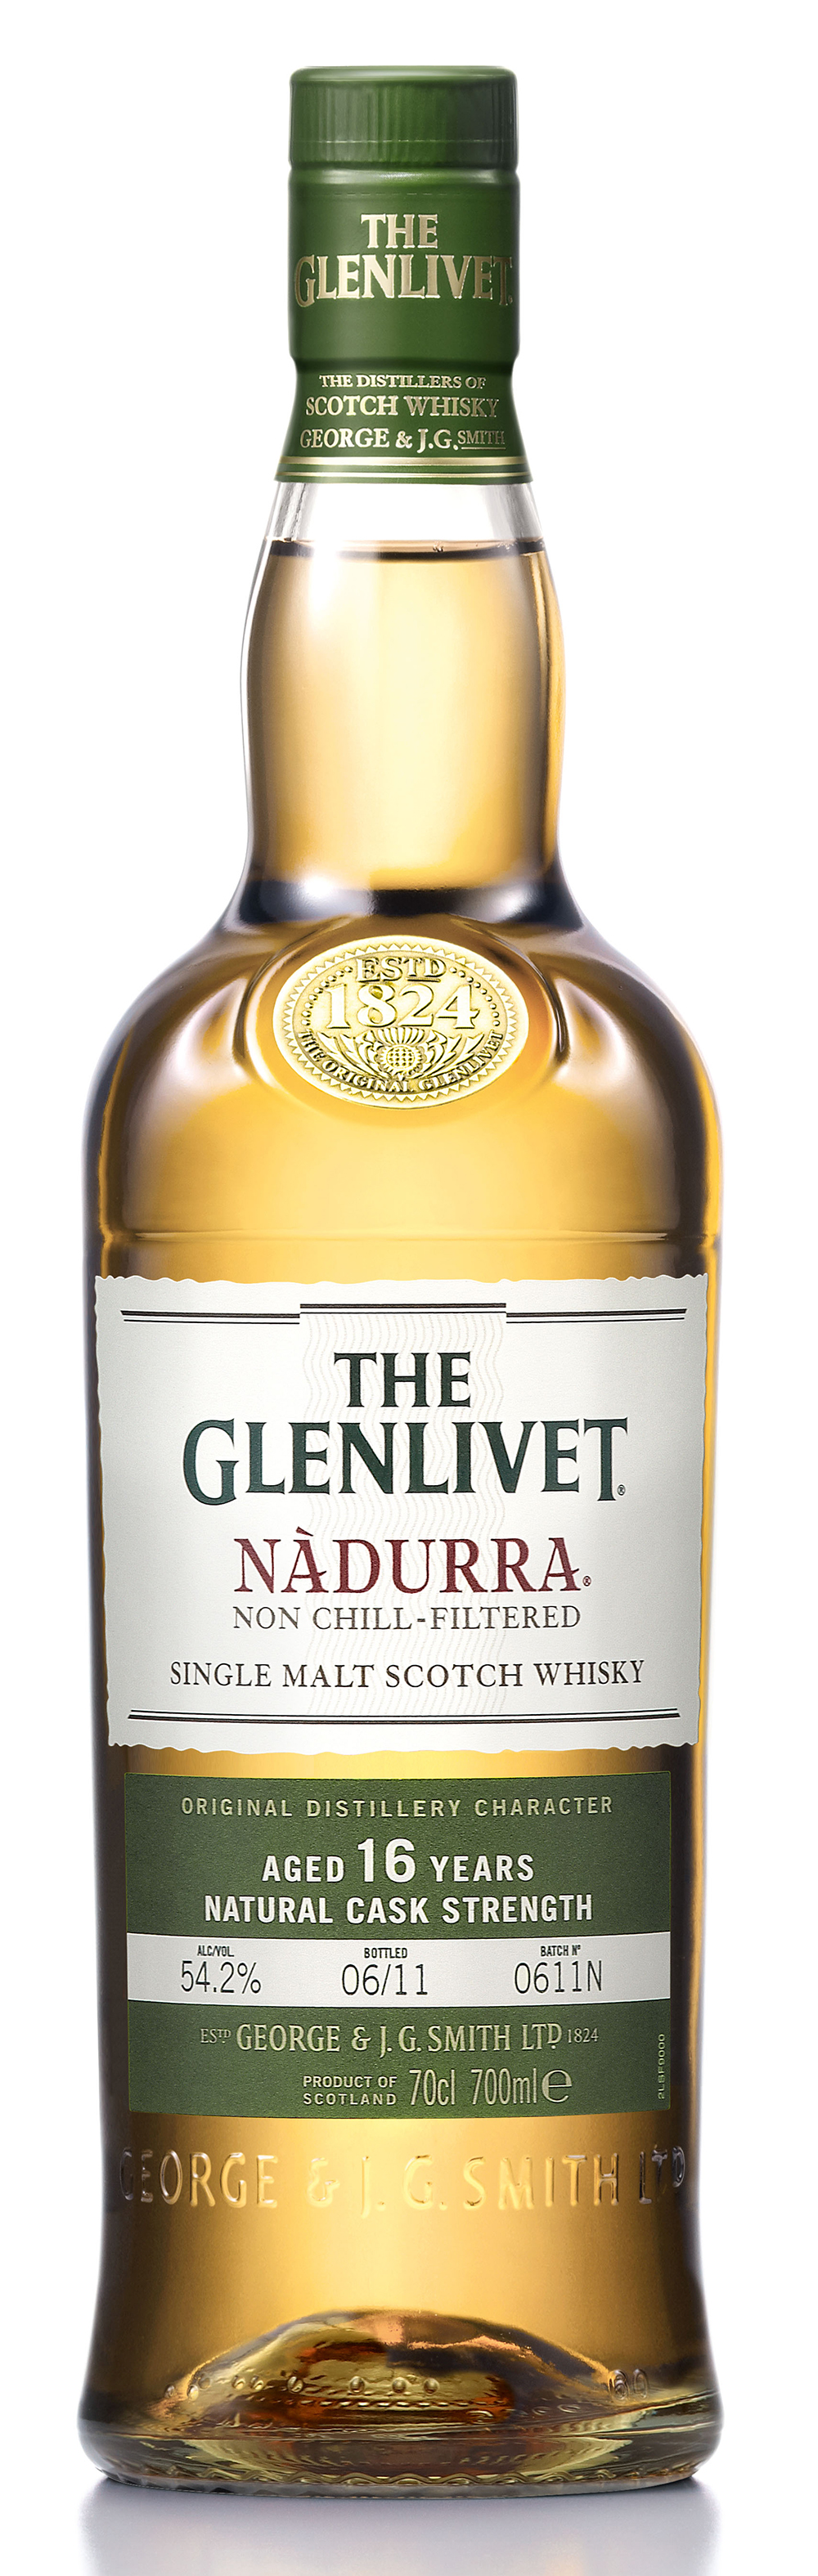 Billede: The Glenlivet Nadurra 16 Cask Strength.jpg